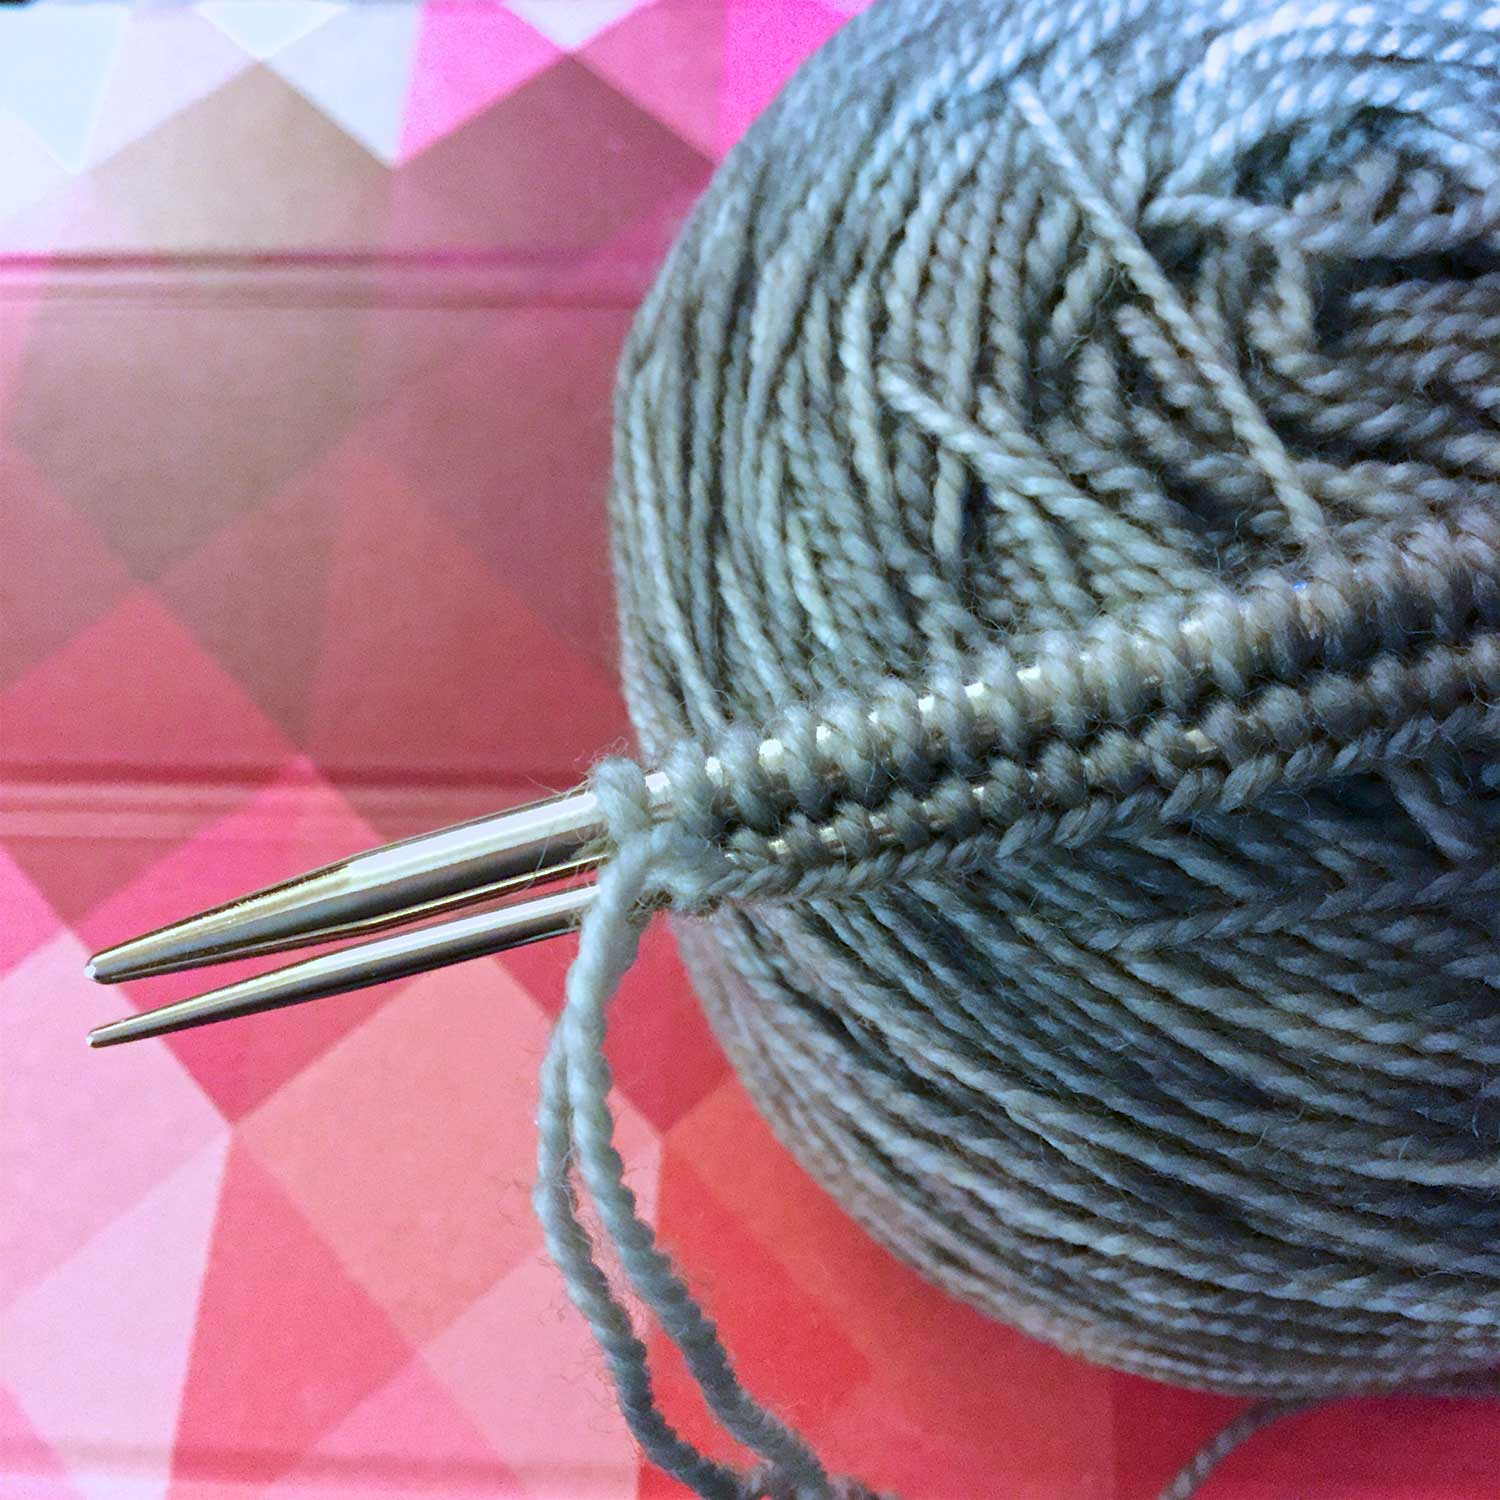 A cast on just worked on two needles (one larger, one smaller), sitting on top of a grey yarn cake, sitting on an iPad cover with red and pink triangles.